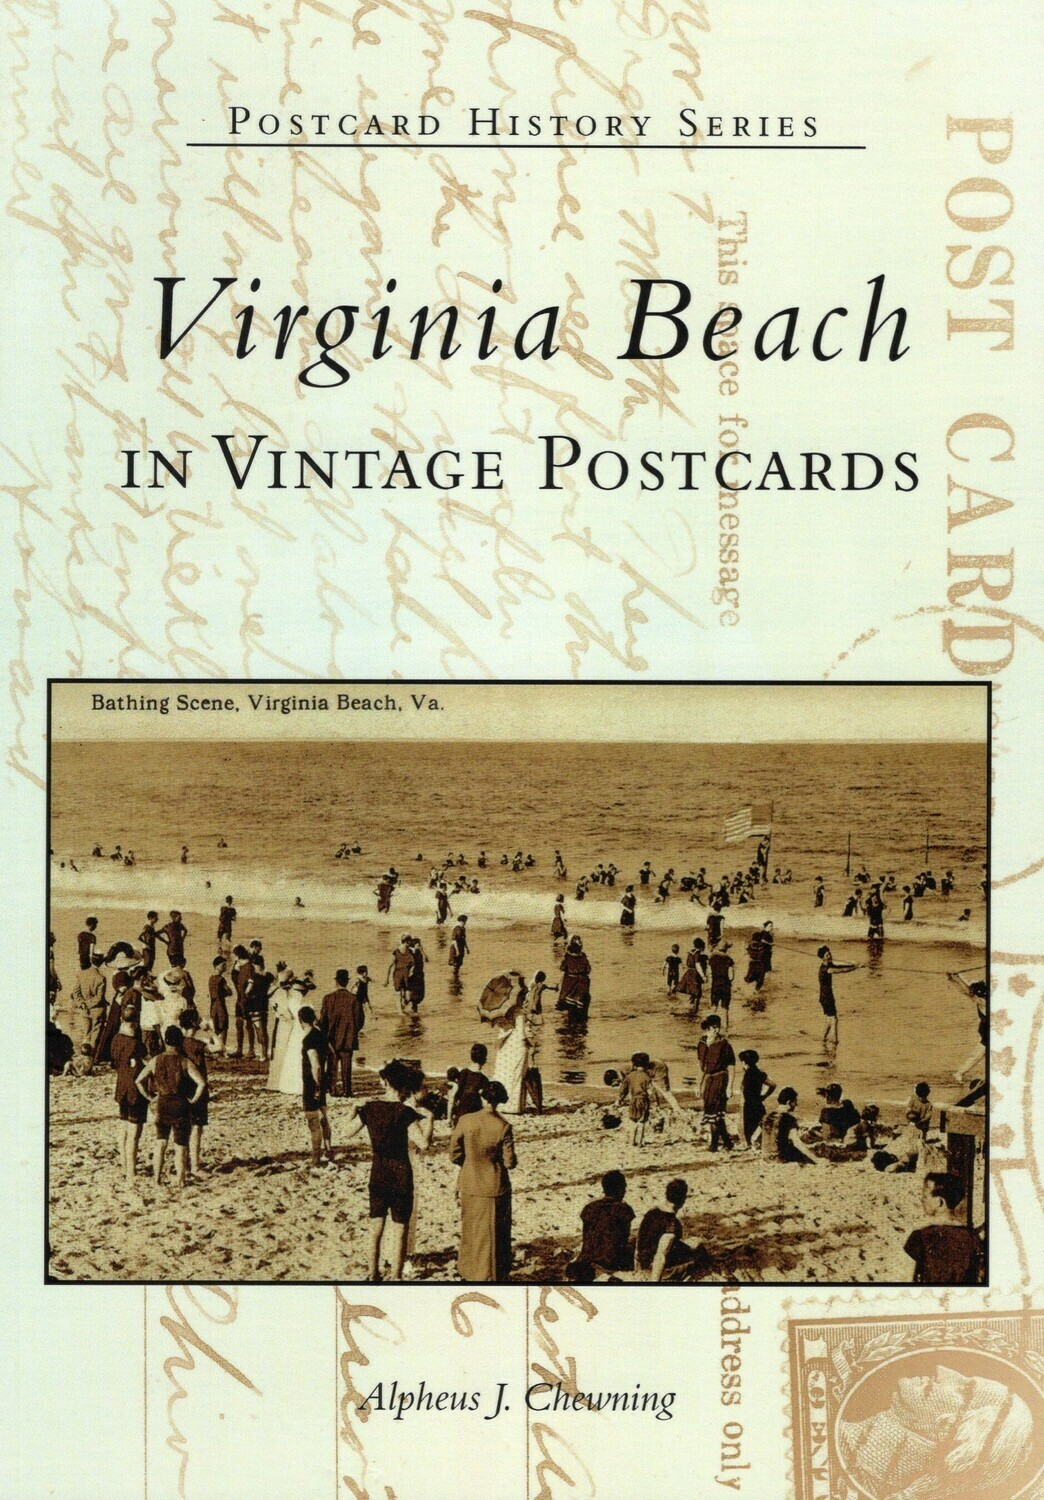 Virginia Beach in Vintage Postcards by Alpheus Chewning